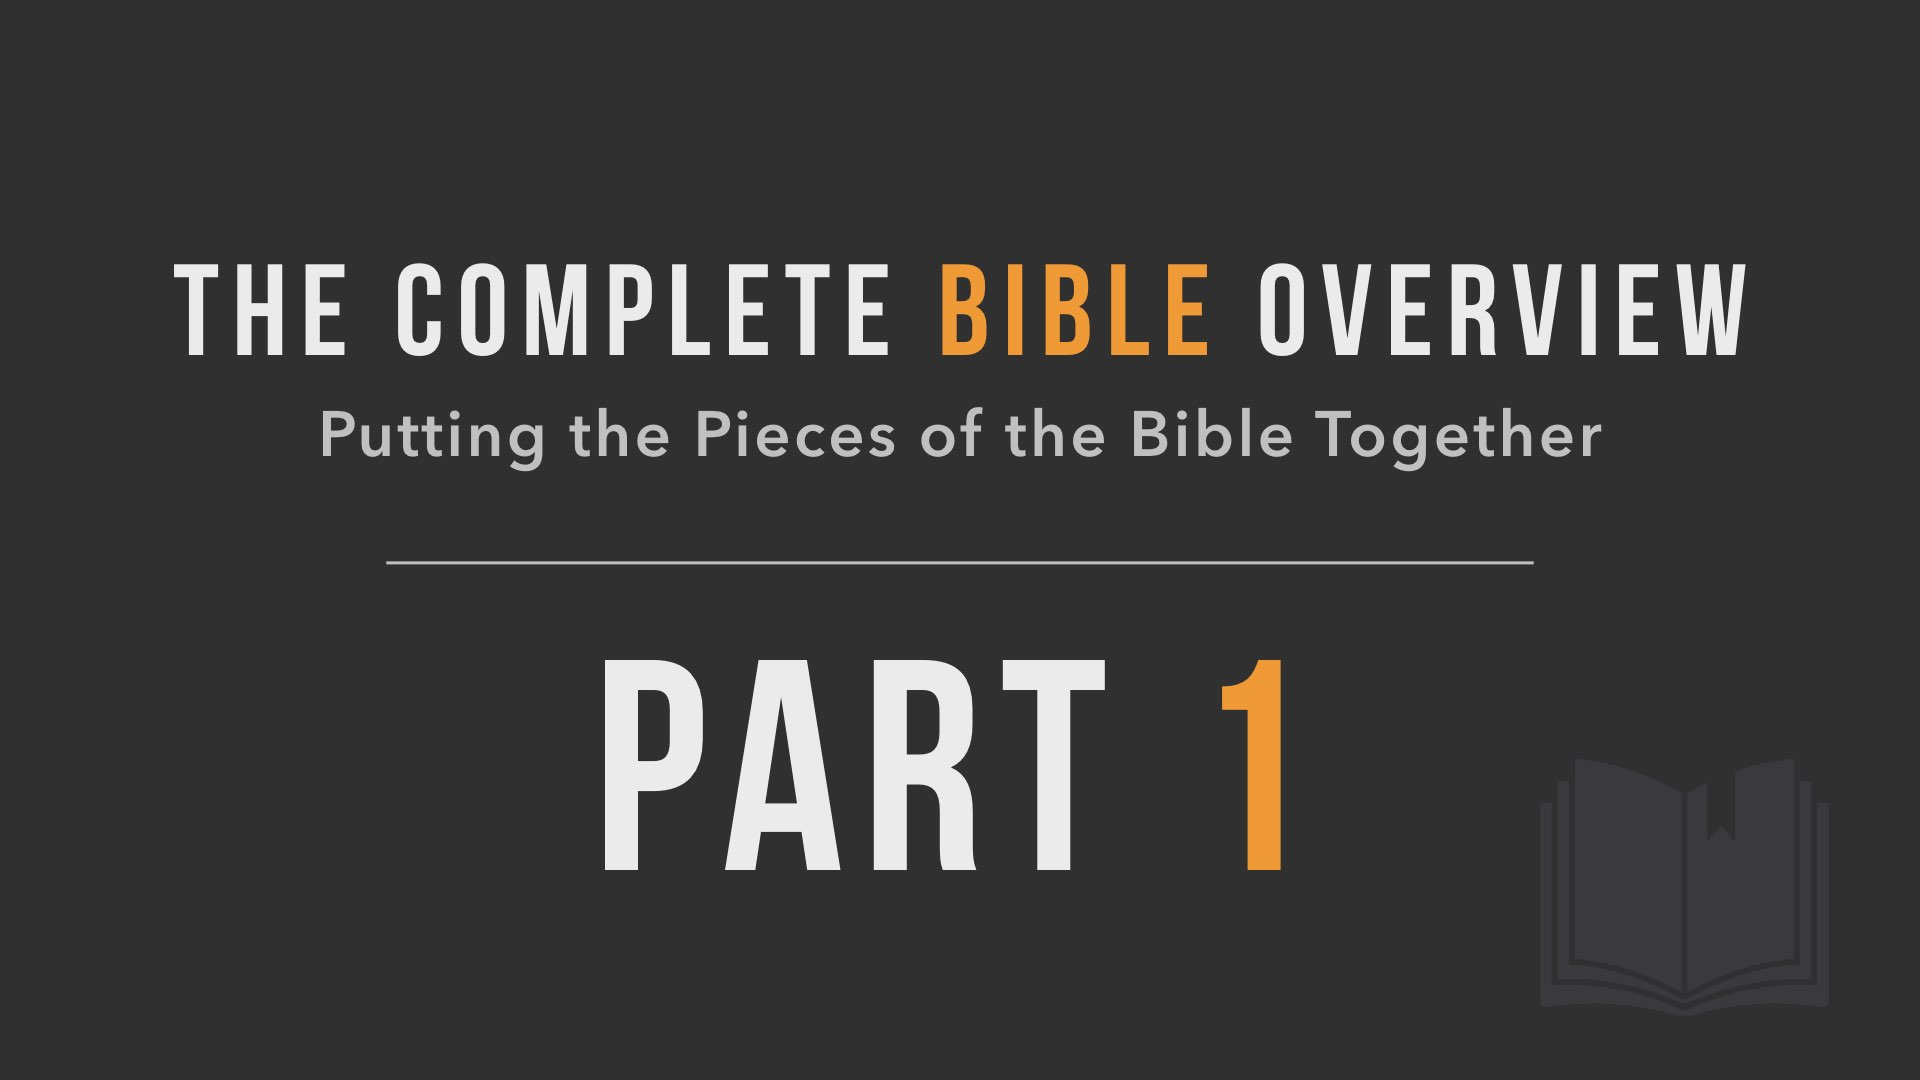 The Complete Bible Overview Part 1 Course